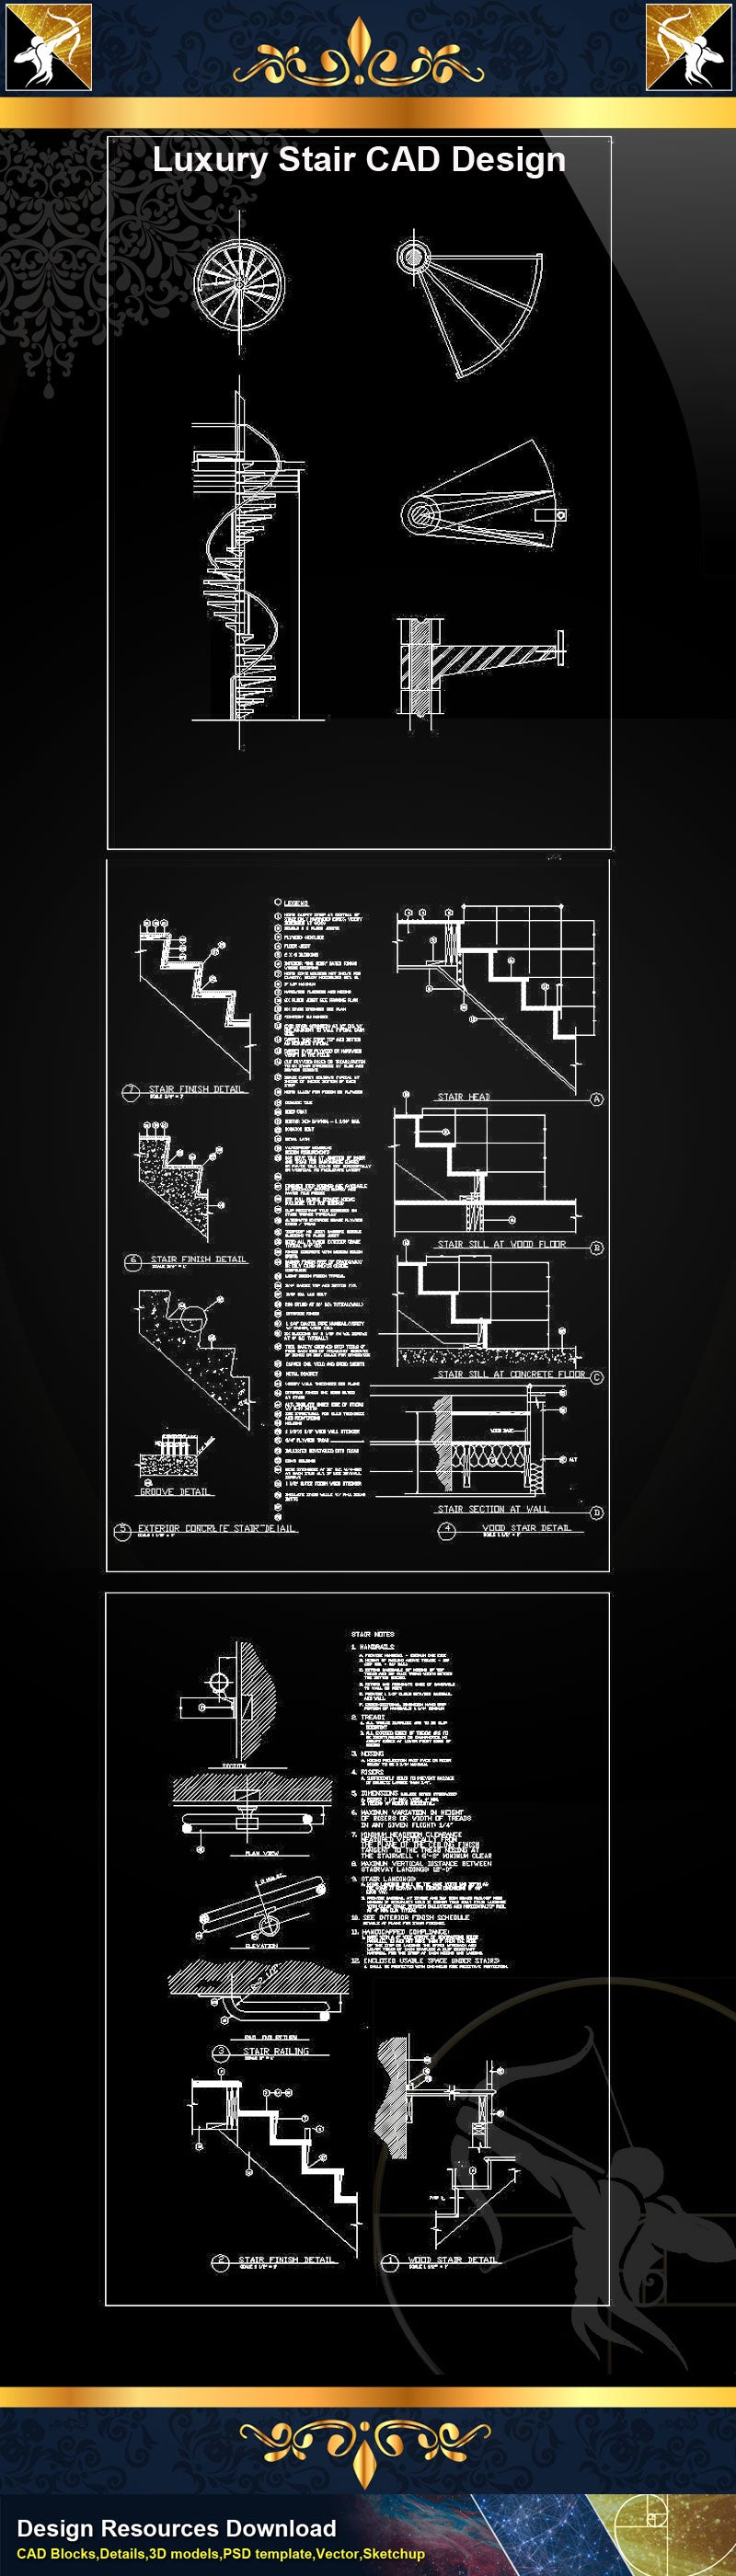 ★Luxury Stair Design CAD Drawings